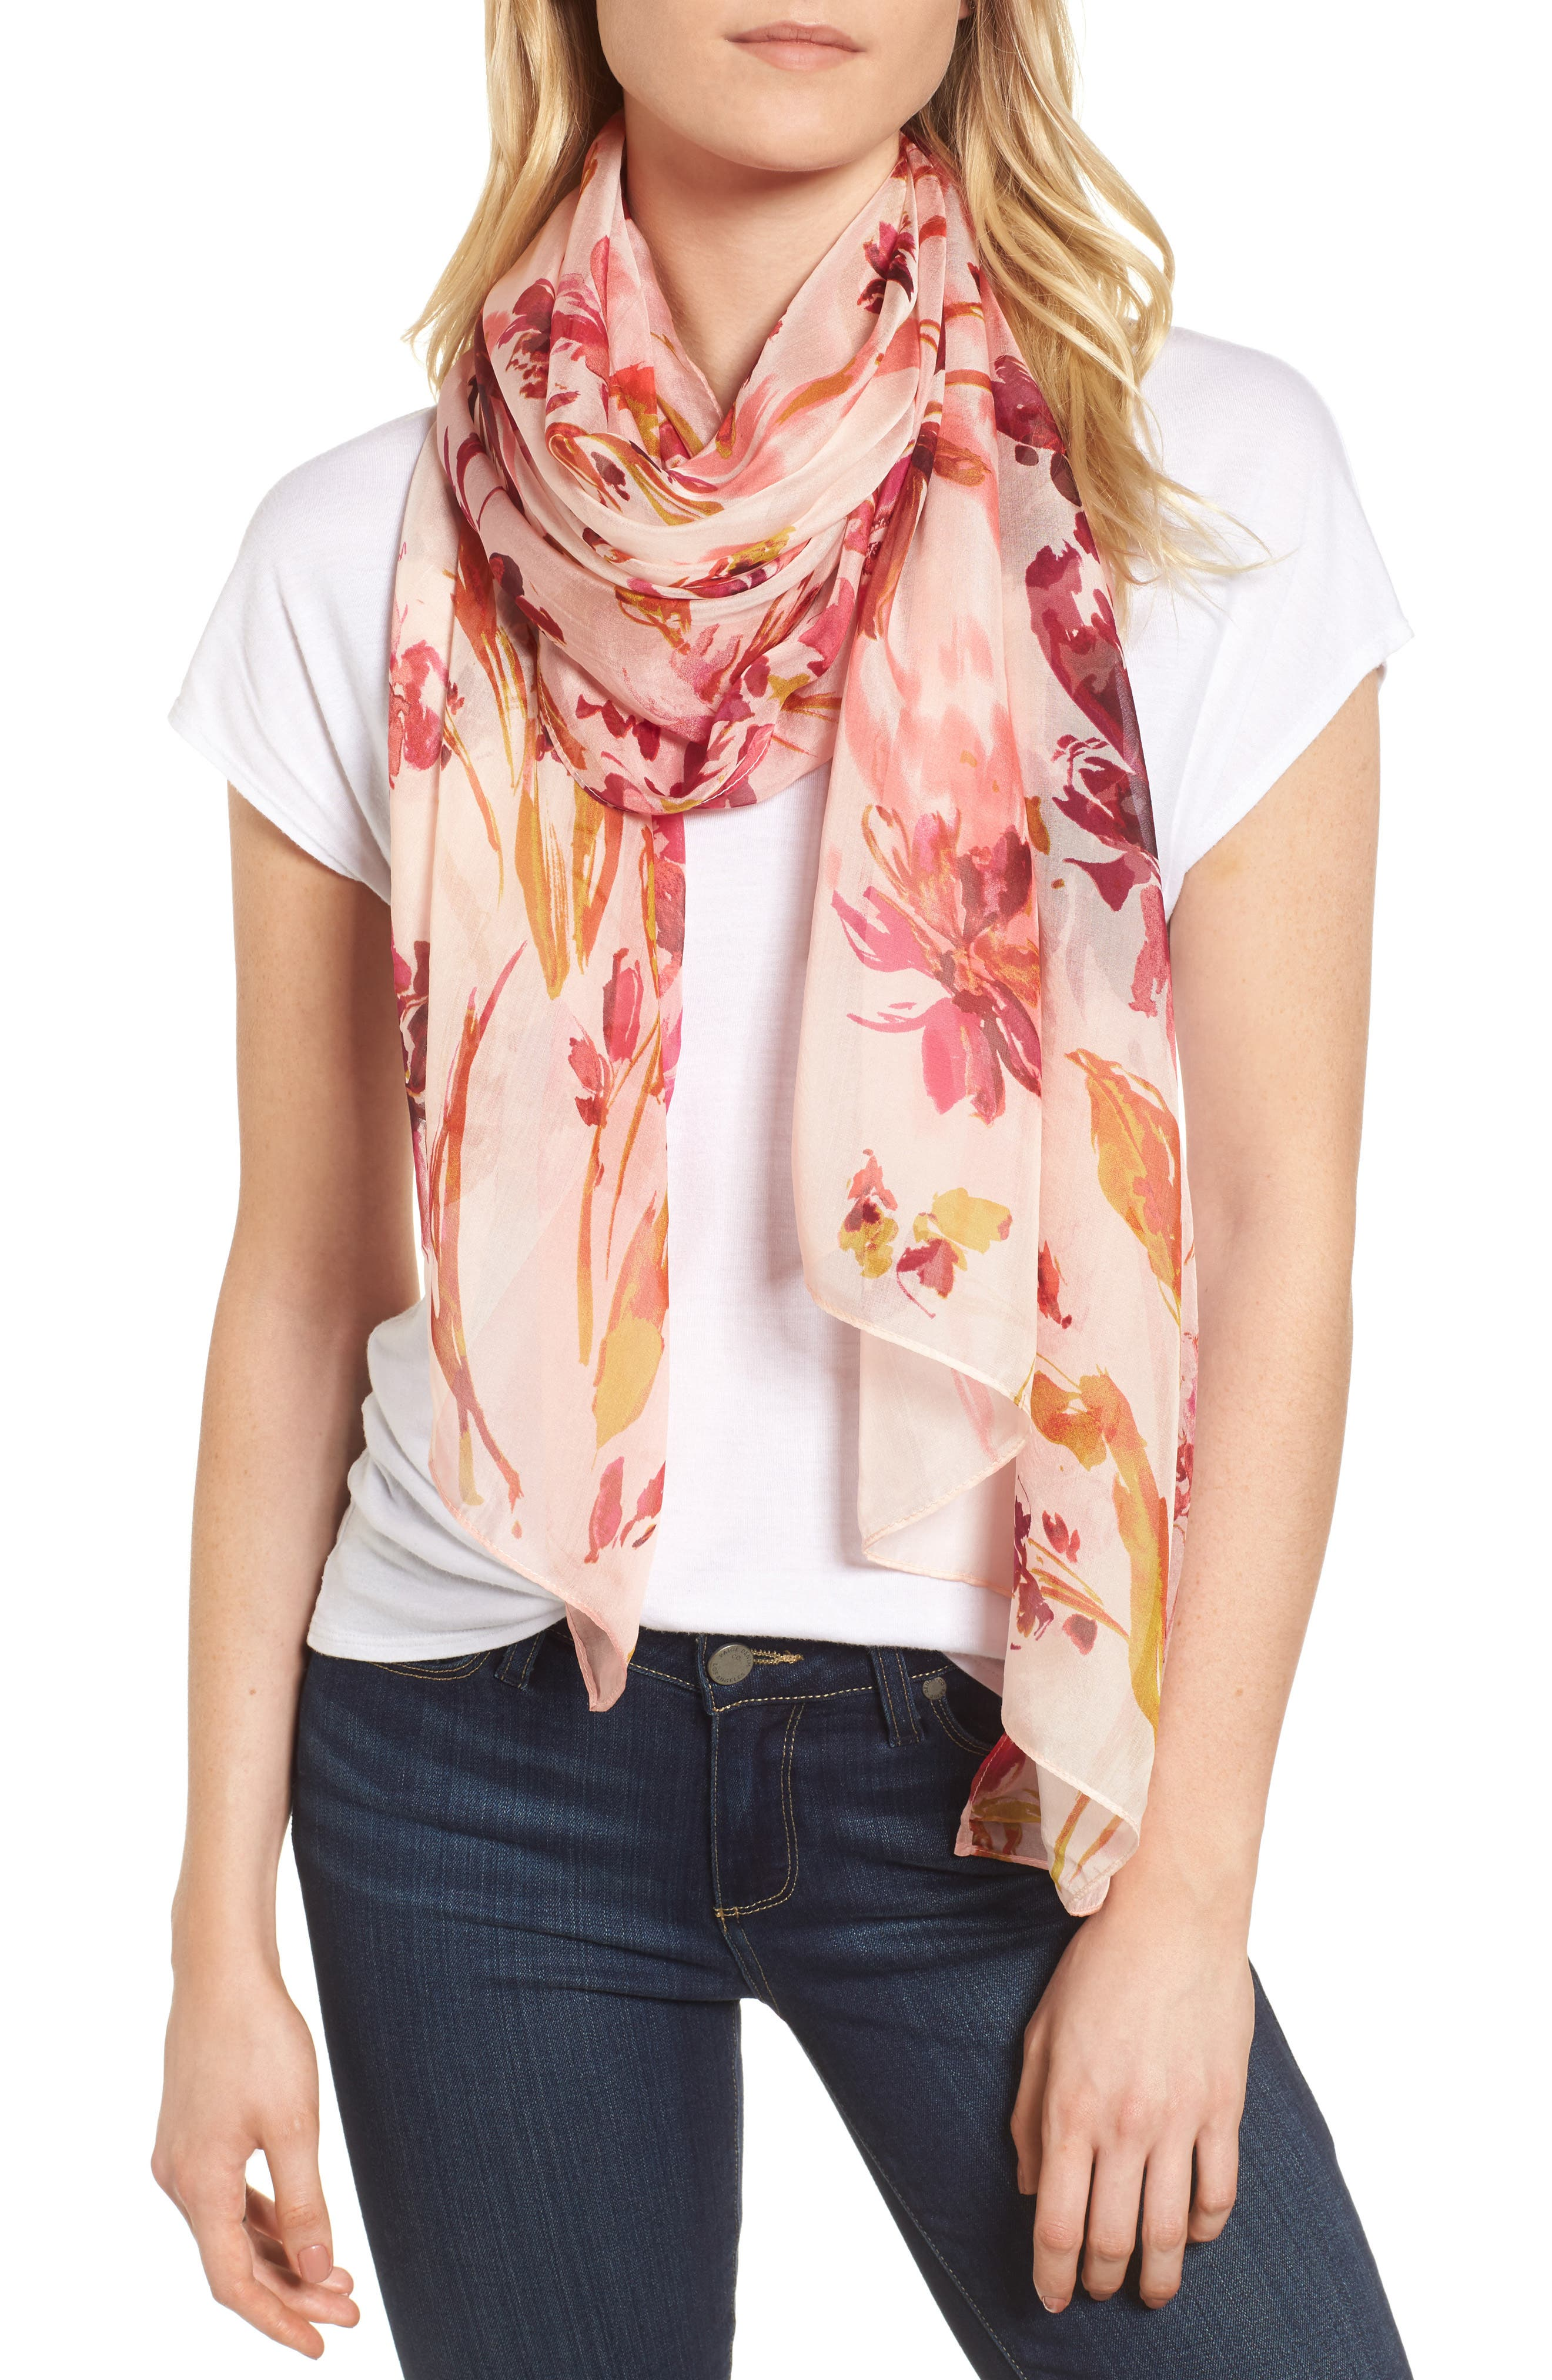 Silk Chiffon Oblong Scarf,                             Main thumbnail 1, color,                             Pink Mapped Floral Mix